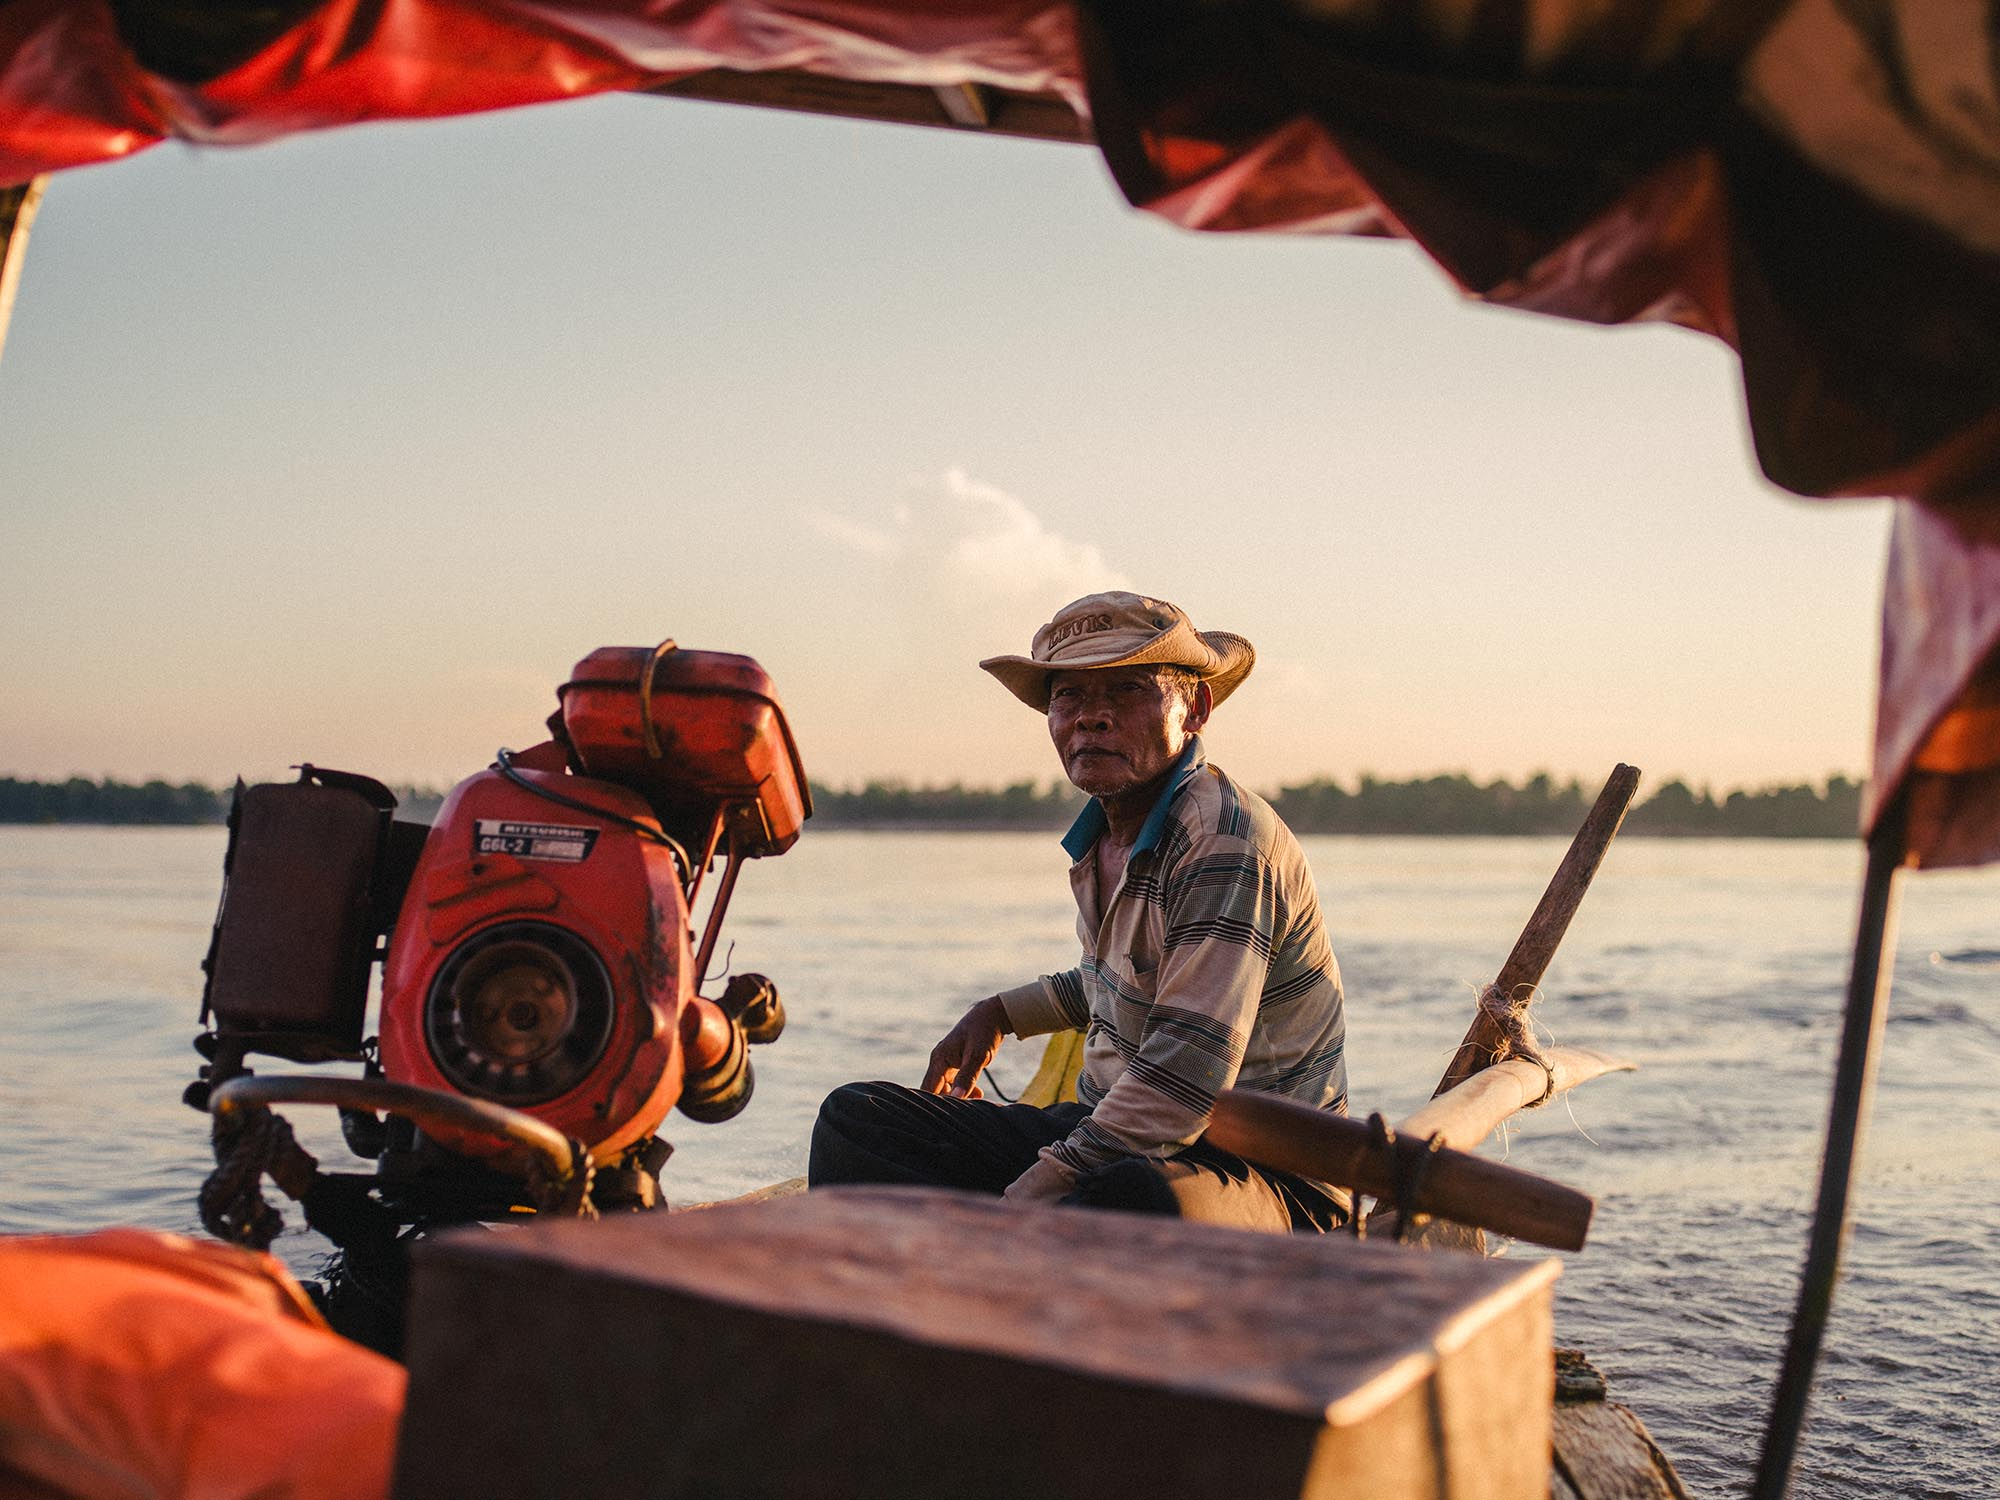 Dolphin spotting on the Mekong River. One of our favorite experiences in Cambodia...